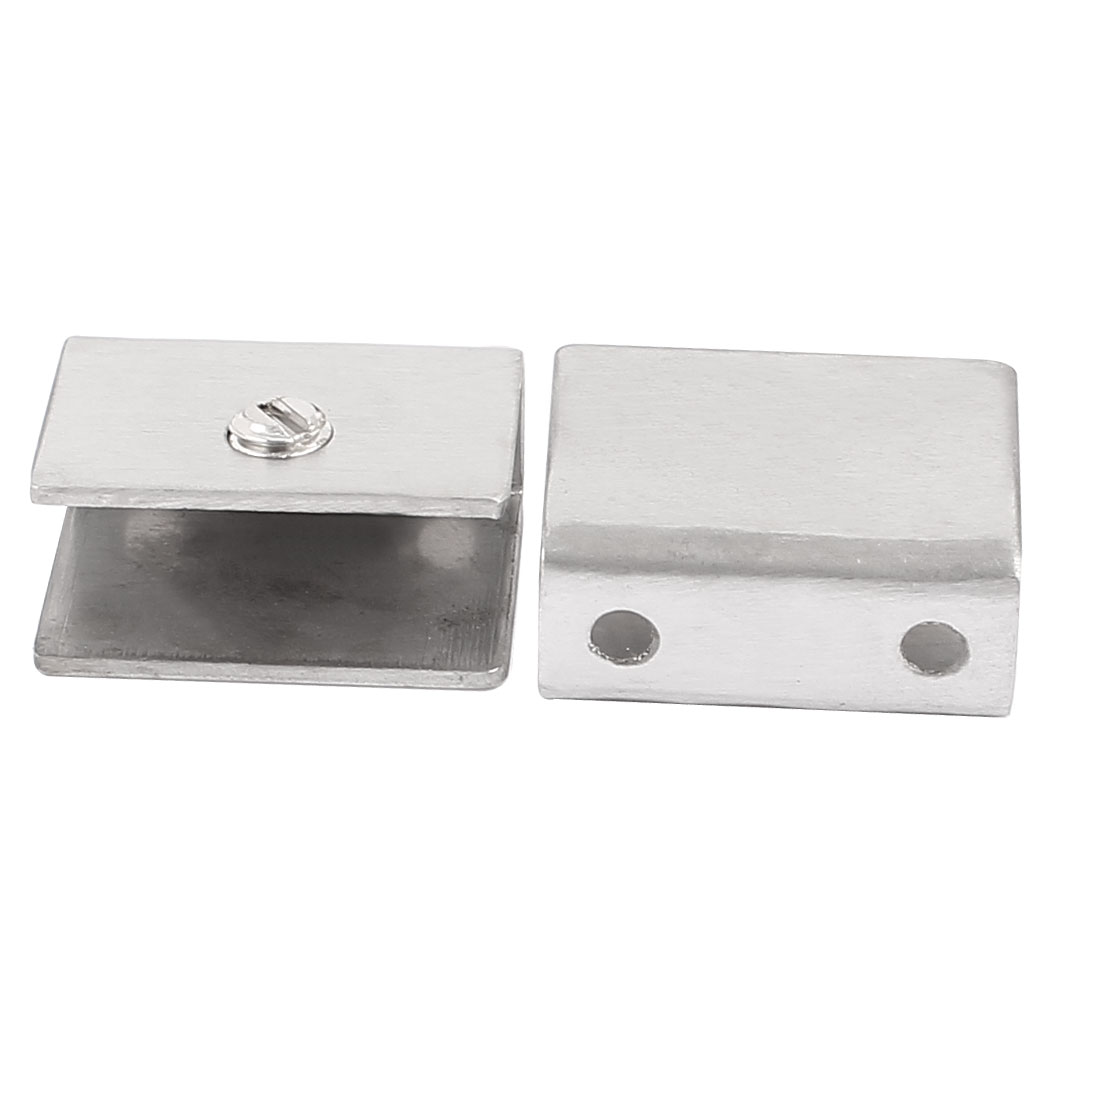 2pcs Adjustable Screw Rectangle Frameless Shower Cabinet Door Hinge Clip Clamp Bracket Holder for 8-12mm Thick Glass